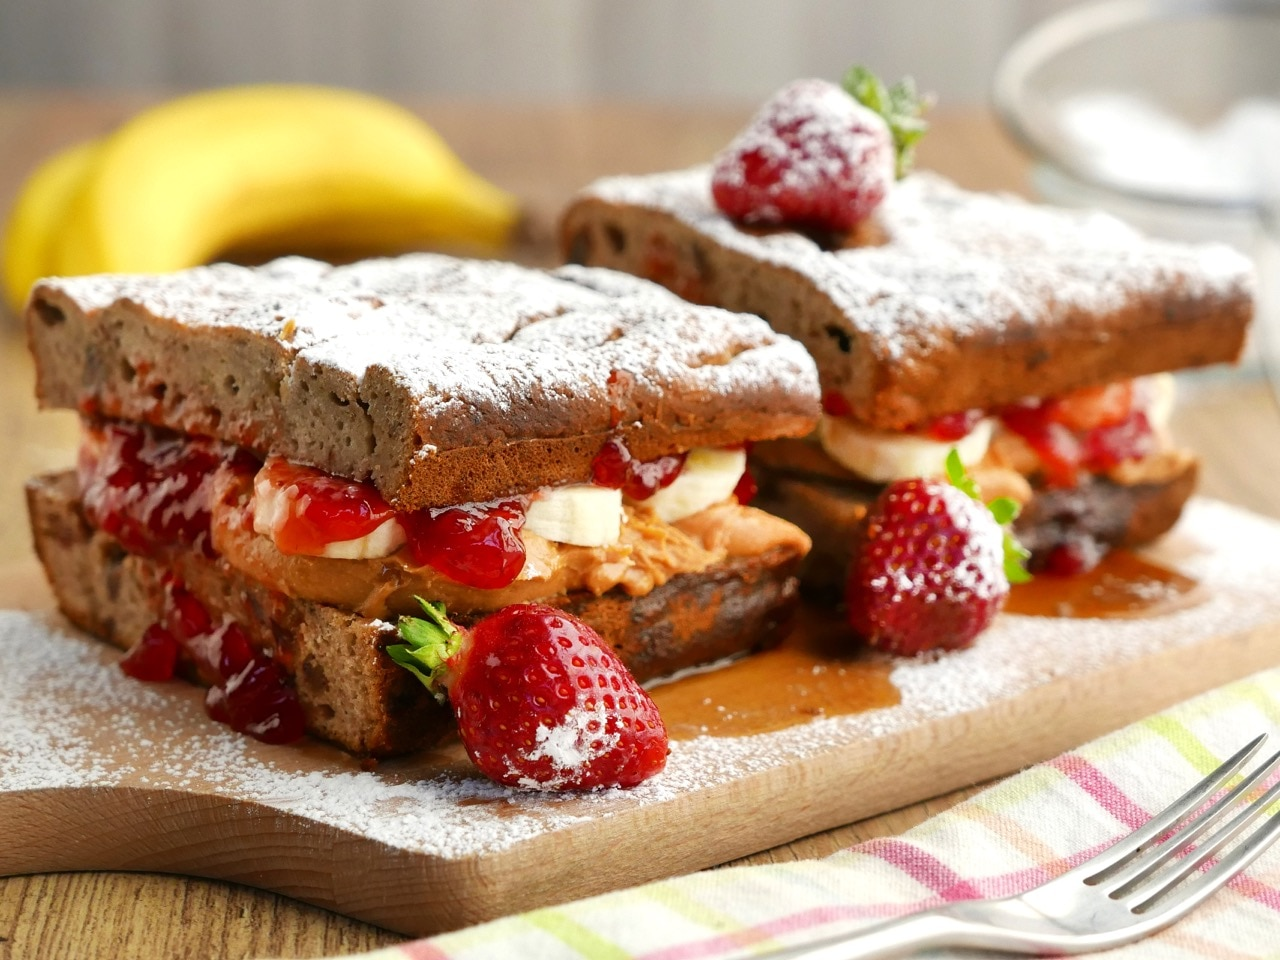 Gluten Free Banana Bread Sandwiches